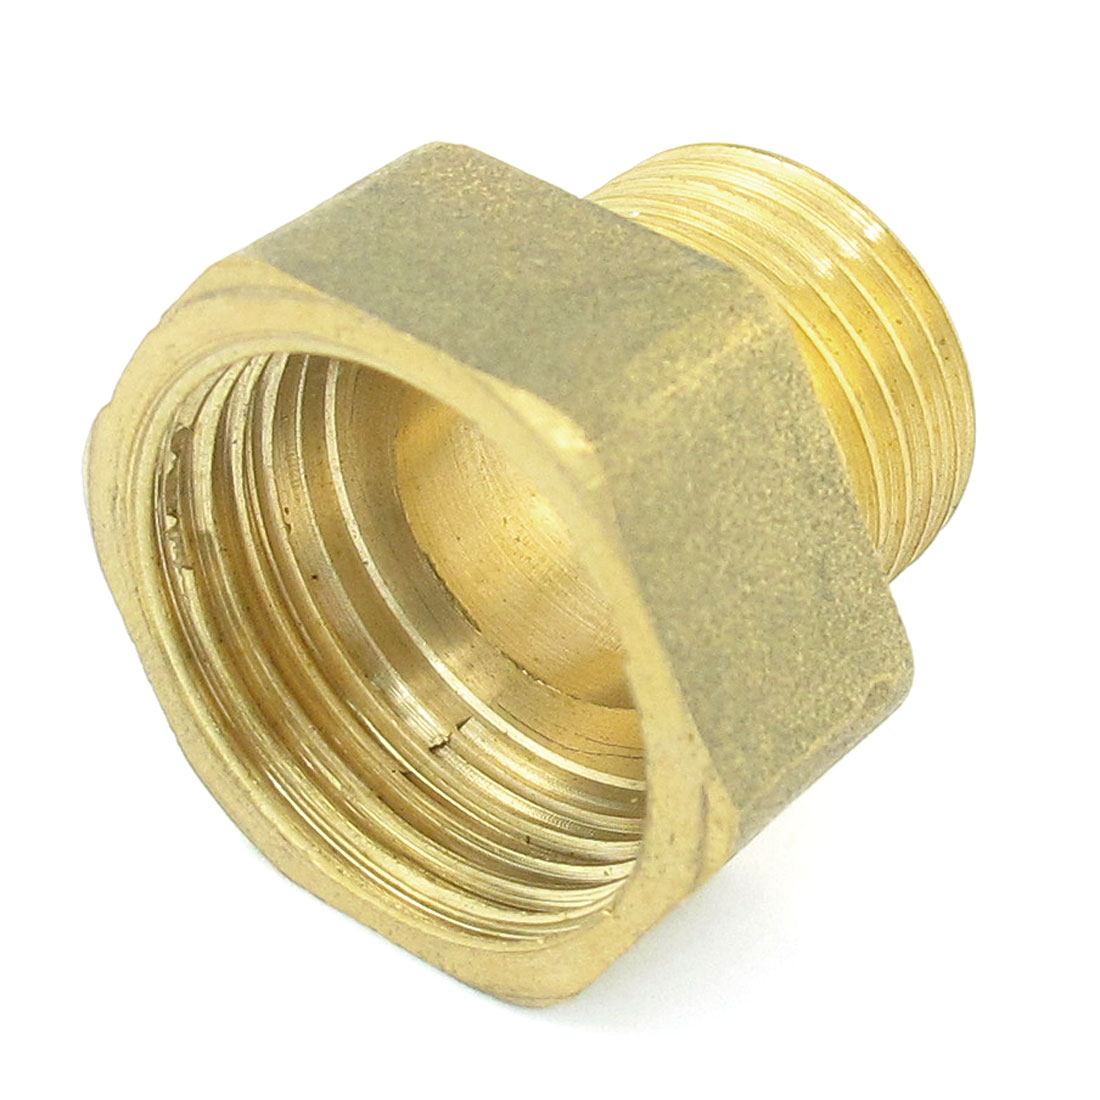 Hydraulic 1/2PT Male to 3/4PT Female Thread Pipe Hex Reducing Bushing Adapter